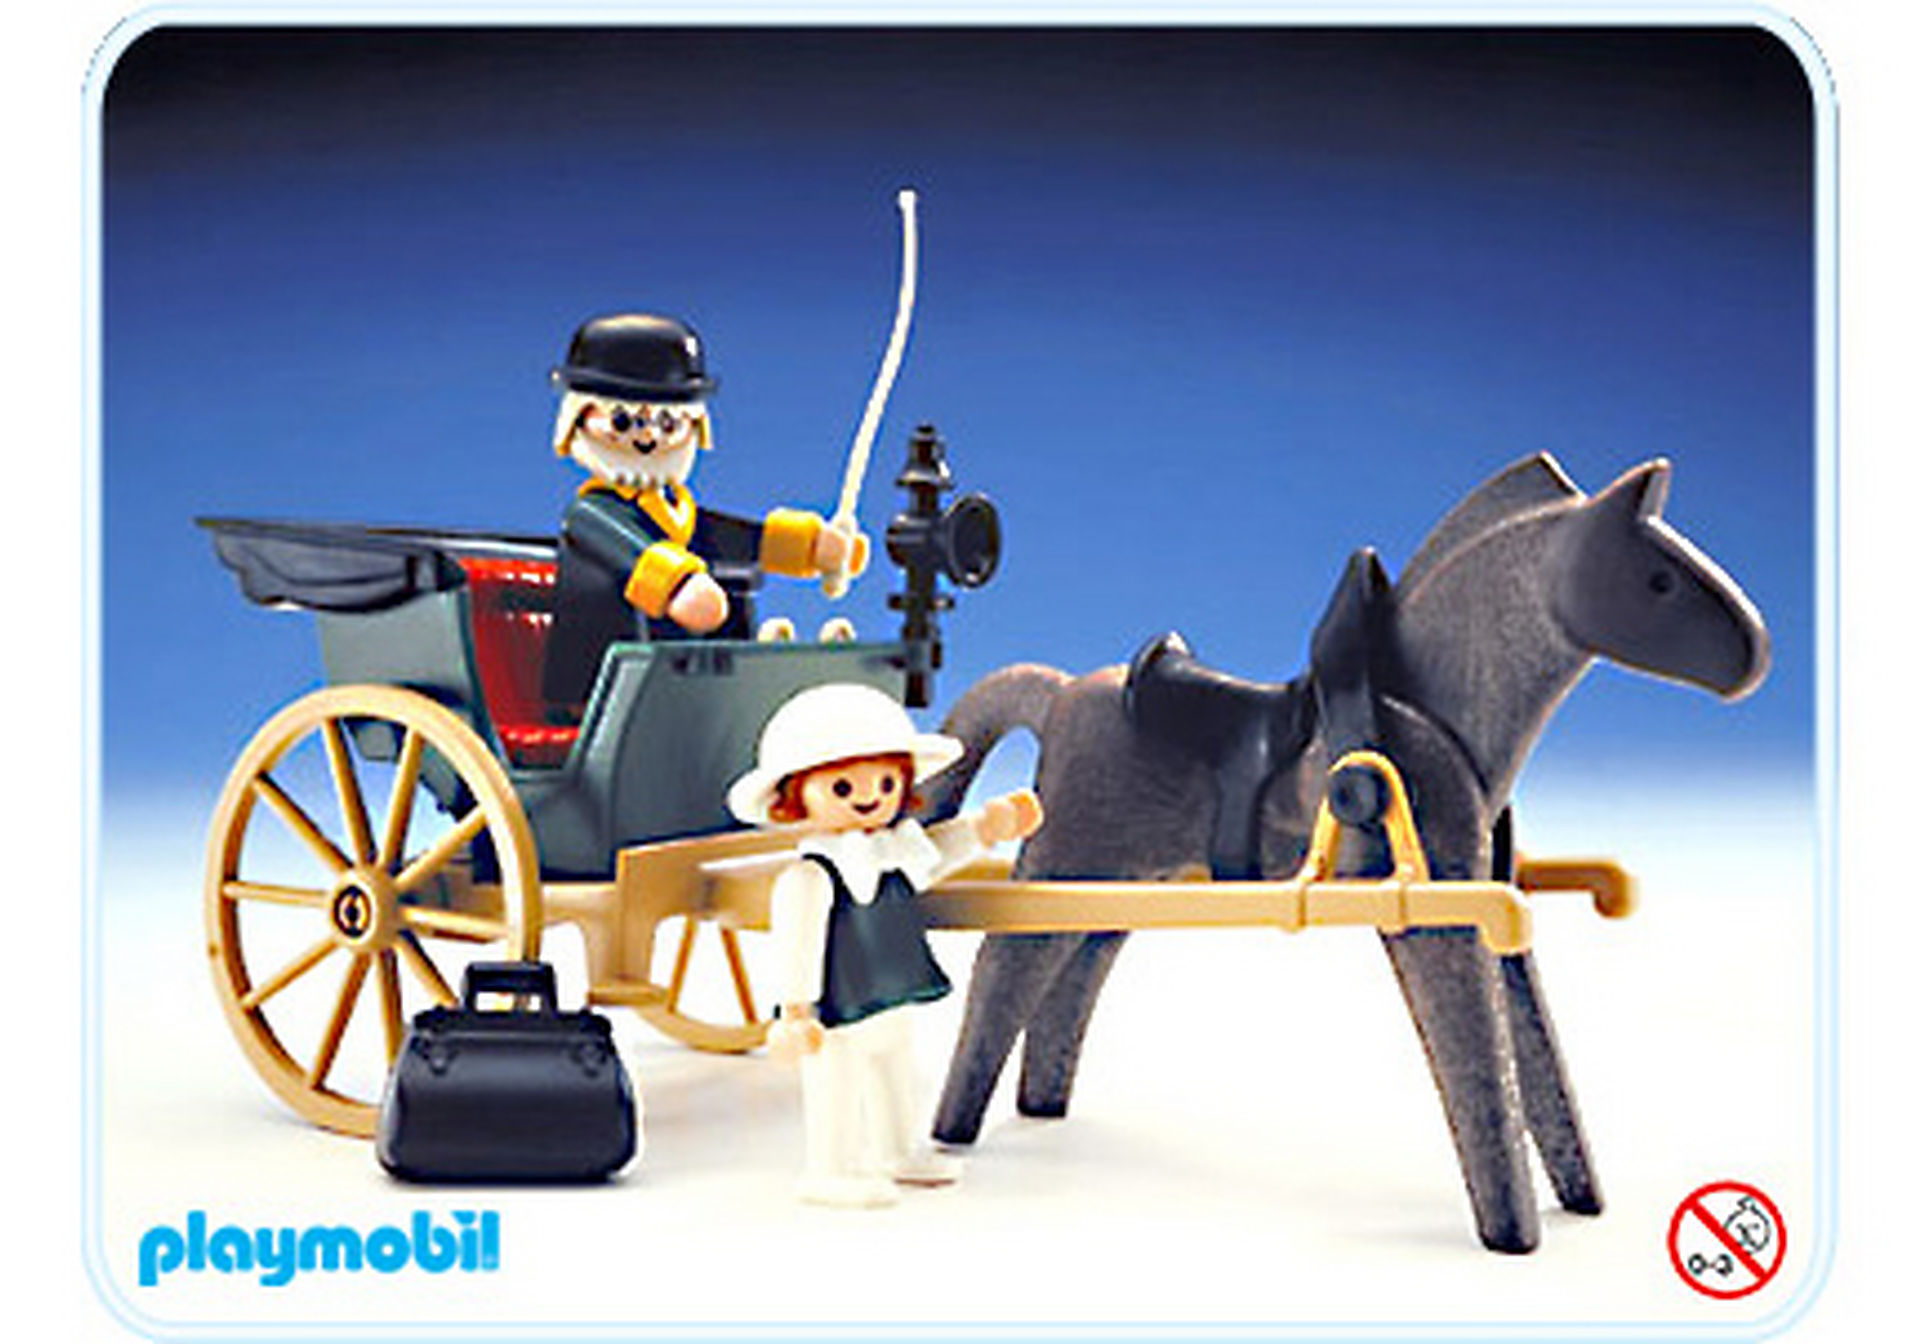 http://media.playmobil.com/i/playmobil/3481-A_product_detail/Attelage western et médecin